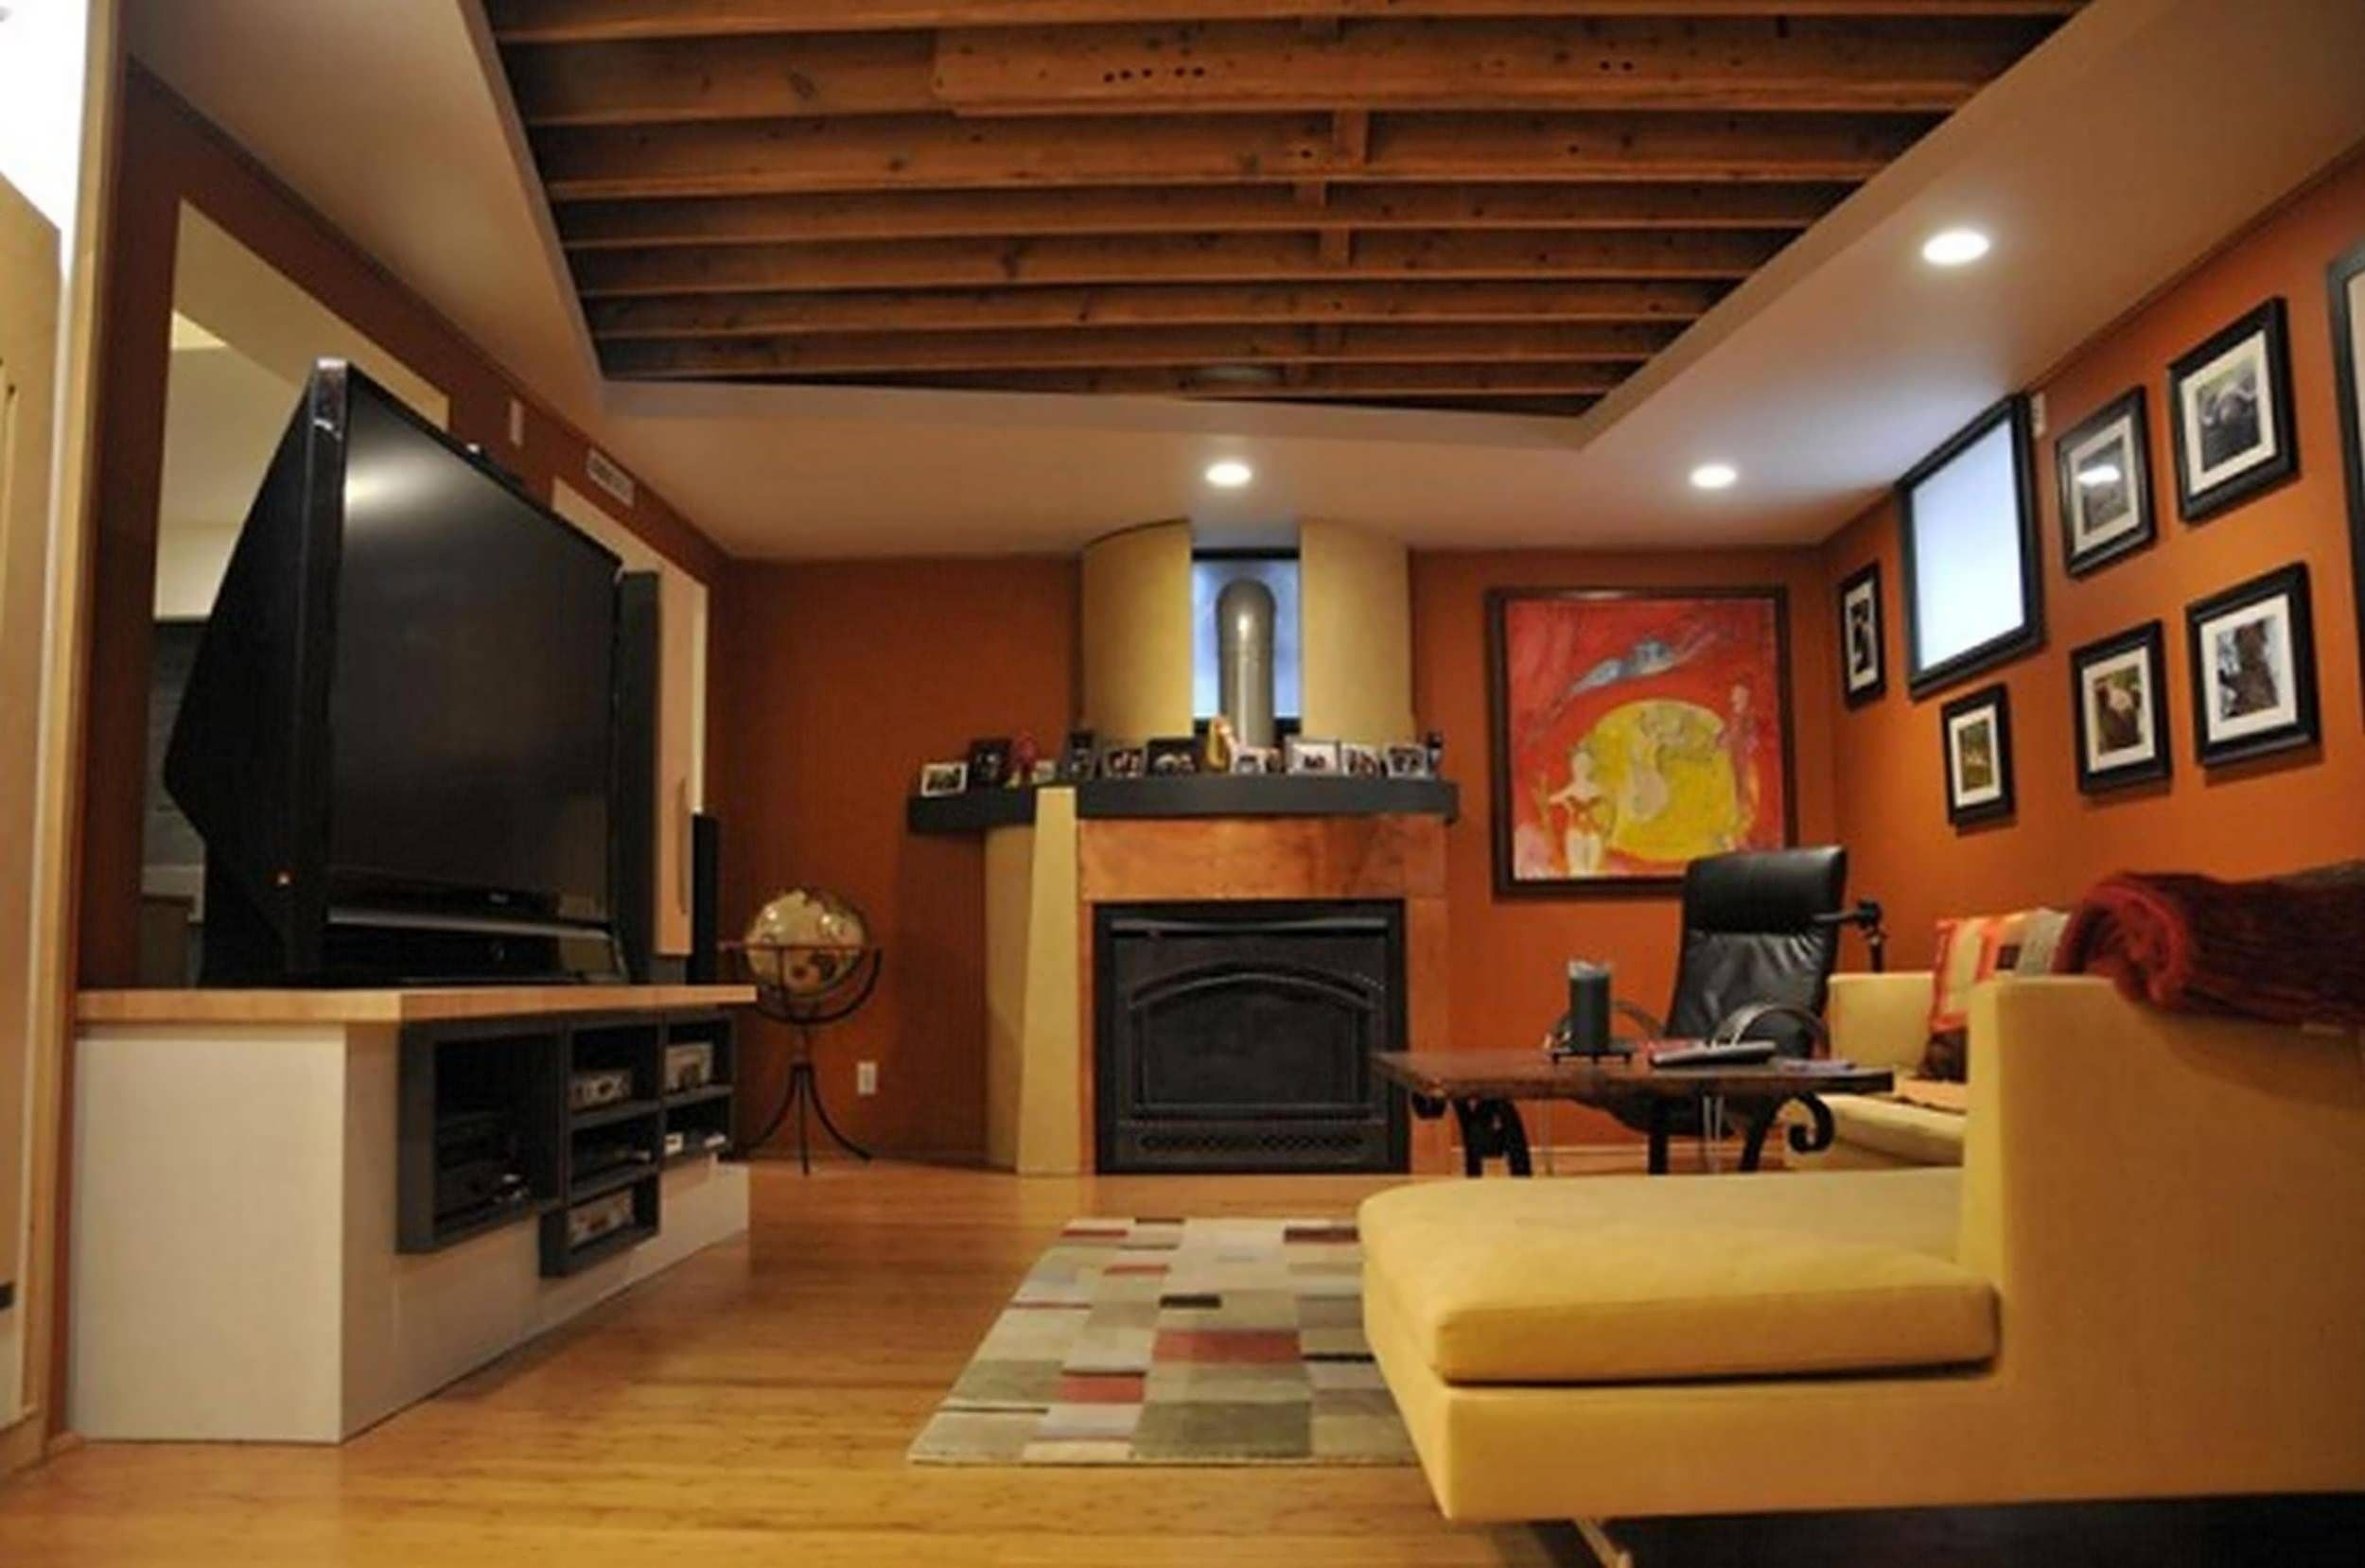 Elegant Semi Finished Basement Ideas Developed With Finished Basement .